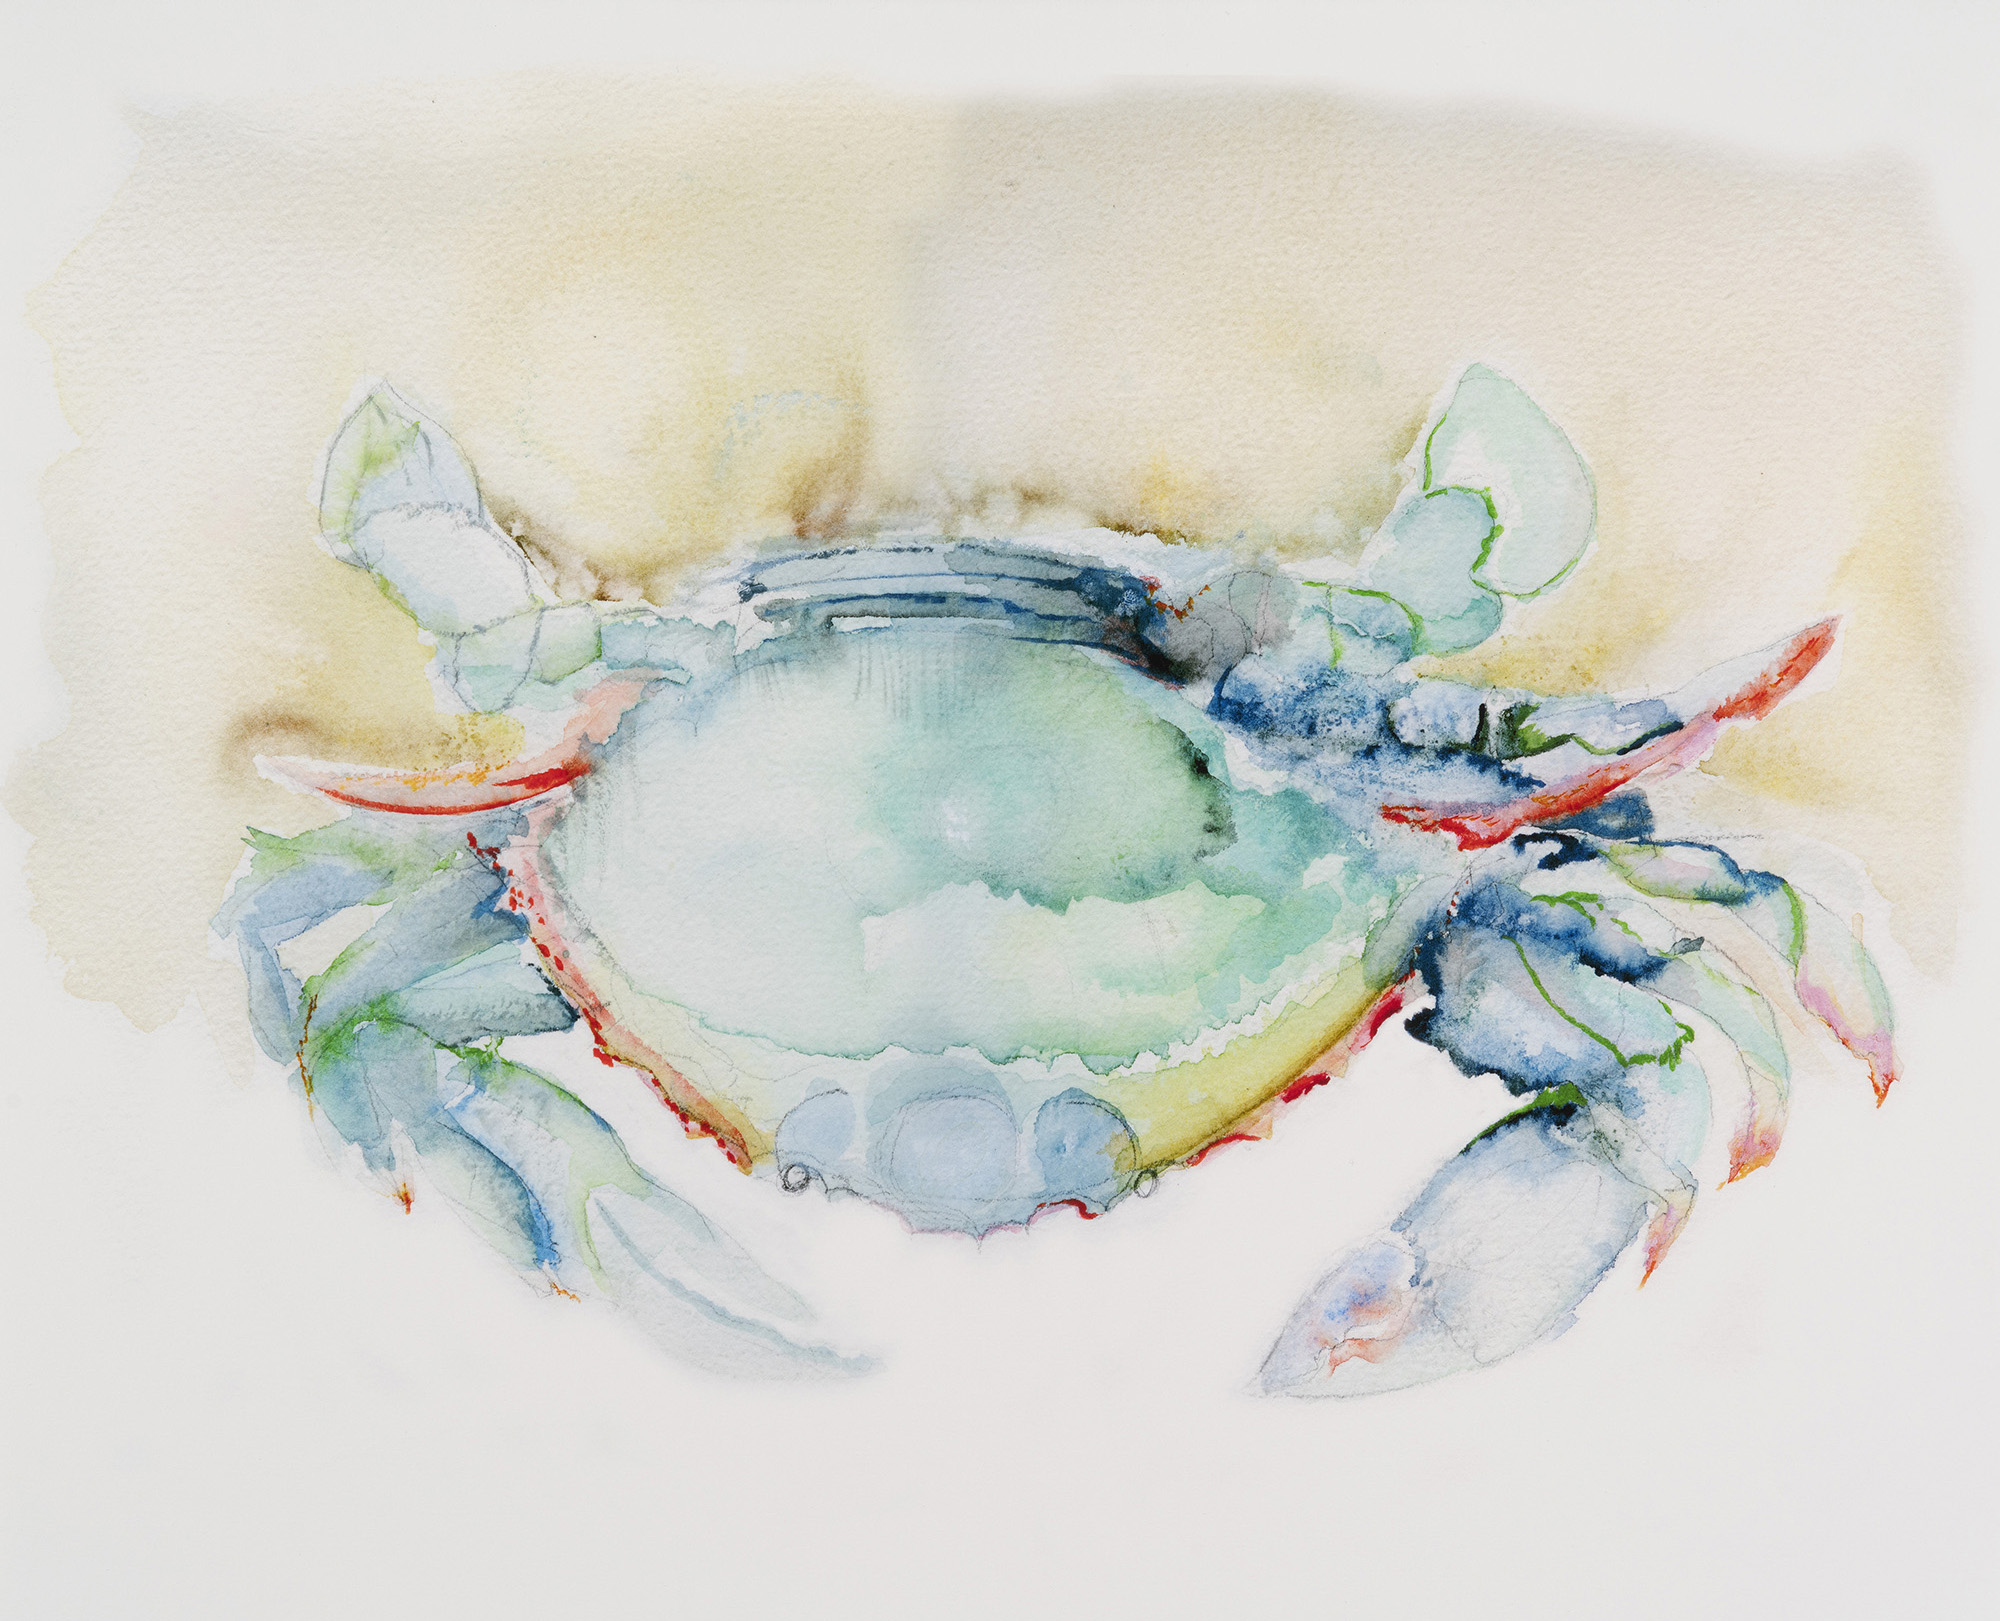 Crab, 2009, Watercolor on paper, 9 x 12 in.